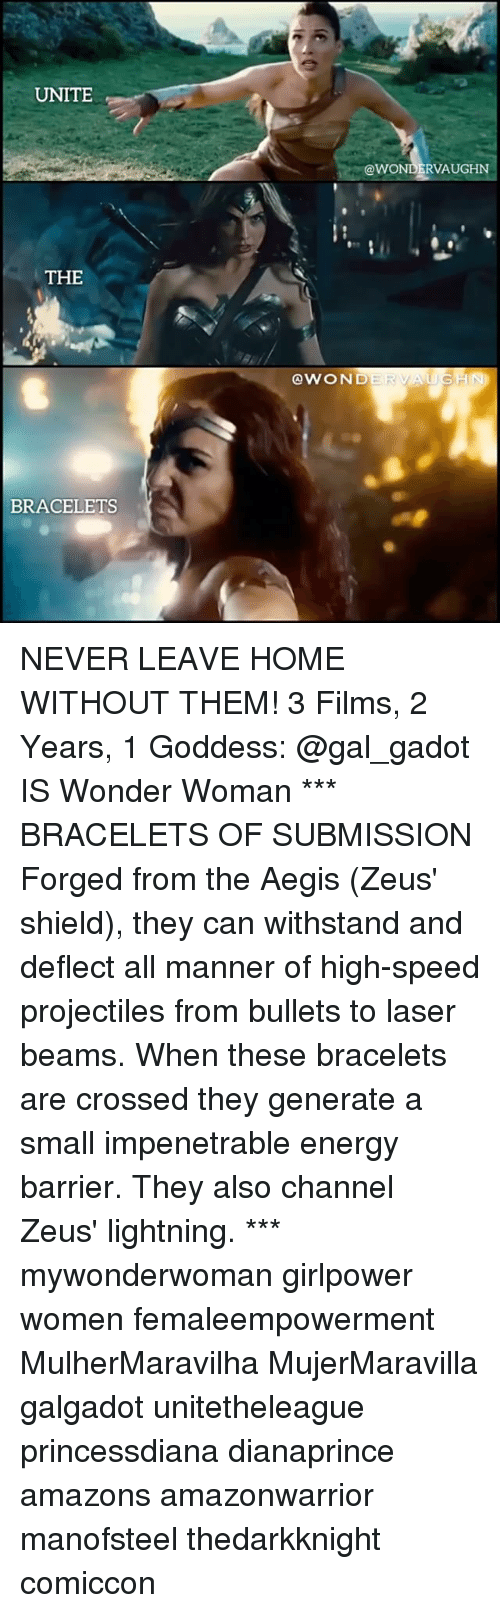 Withstanded: UNITE  @WONDERVAUGHN  THE  @WOND  BRACELETS NEVER LEAVE HOME WITHOUT THEM! 3 Films, 2 Years, 1 Goddess: @gal_gadot IS Wonder Woman *** BRACELETS OF SUBMISSION Forged from the Aegis (Zeus' shield), they can withstand and deflect all manner of high-speed projectiles from bullets to laser beams. When these bracelets are crossed they generate a small impenetrable energy barrier. They also channel Zeus' lightning. *** mywonderwoman girlpower women femaleempowerment MulherMaravilha MujerMaravilla galgadot unitetheleague princessdiana dianaprince amazons amazonwarrior manofsteel thedarkknight comiccon